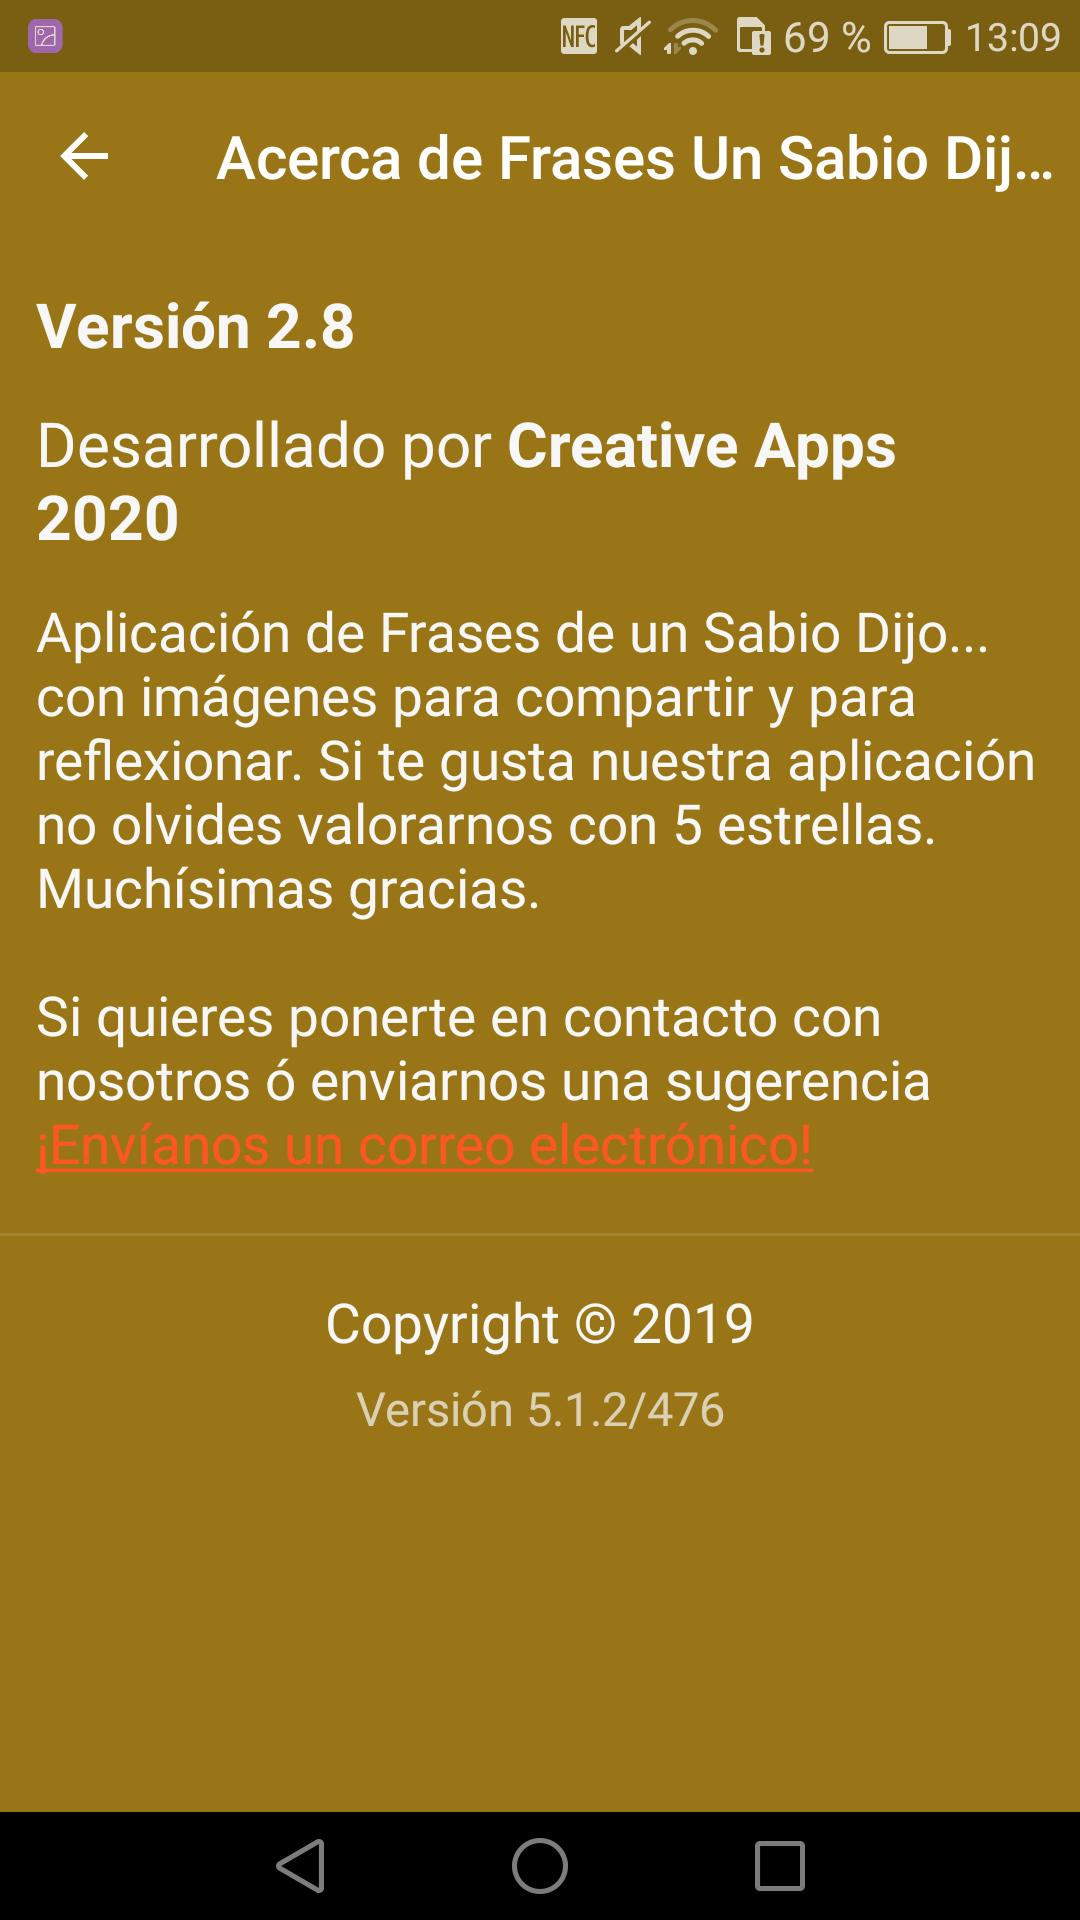 Frases Un Sabio Dijo For Android Apk Download